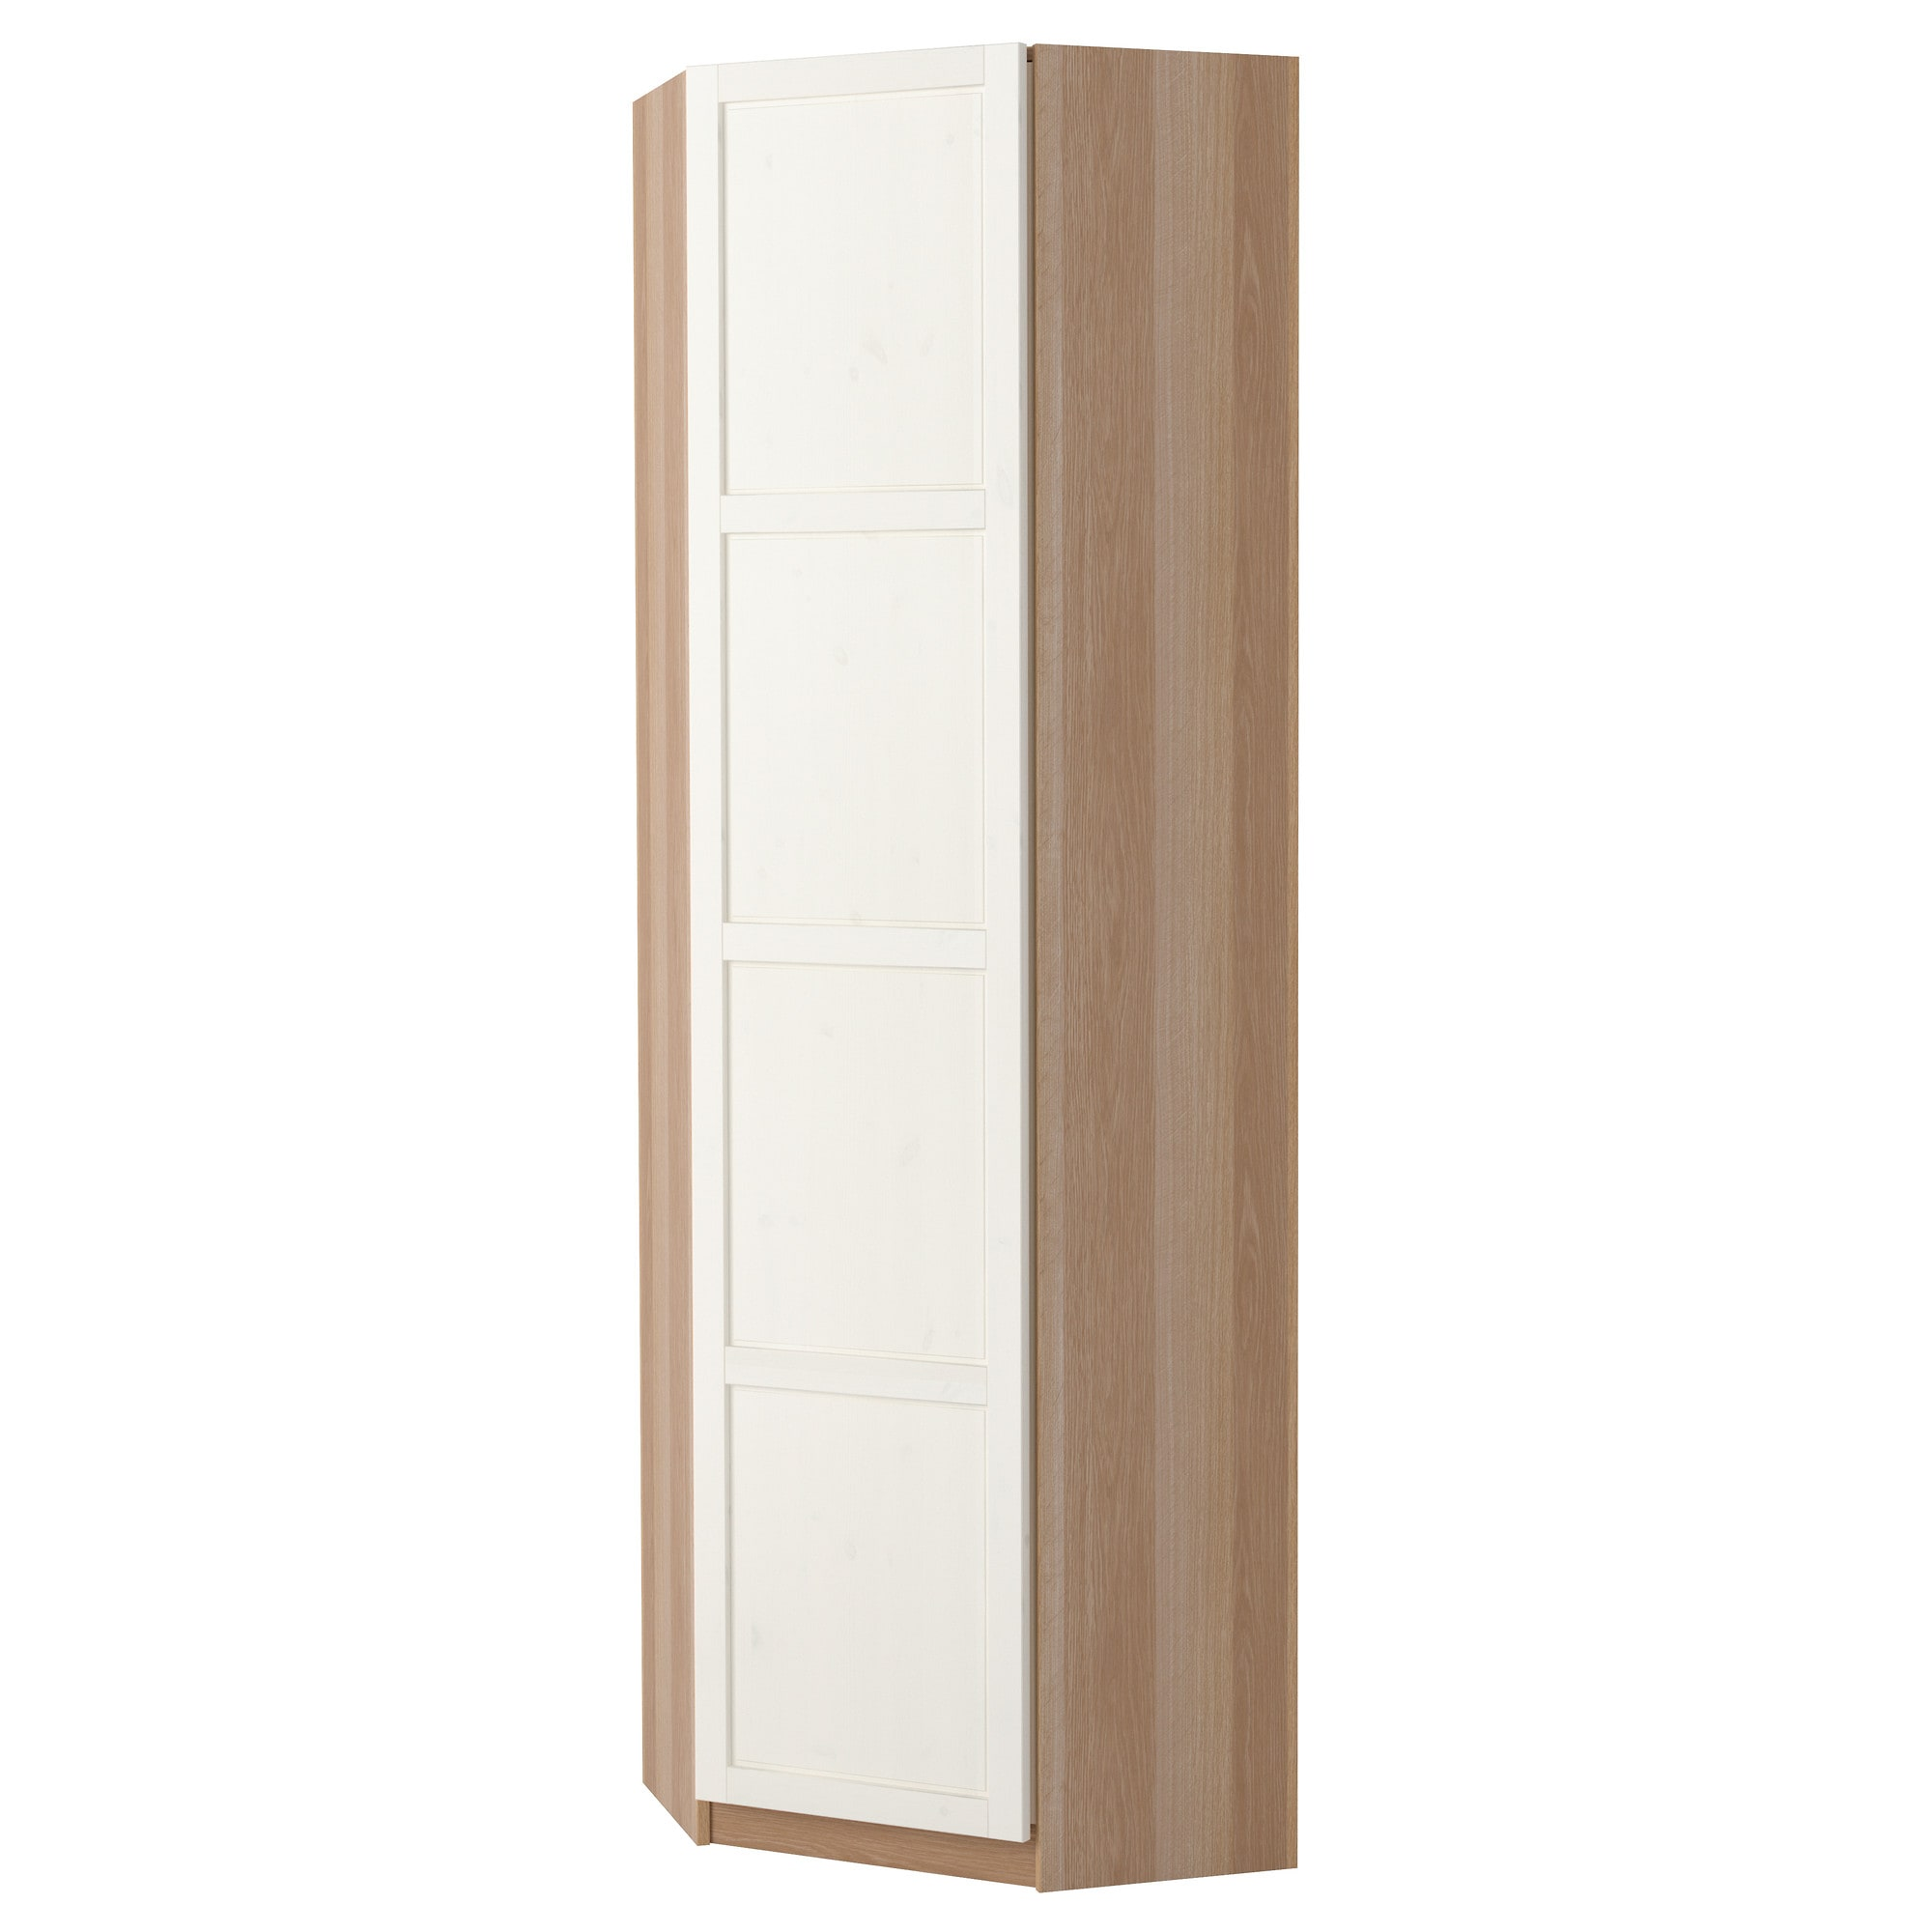 Pax wardrobe white tanem black 50x60x236 cm ikea meuble for Meuble 5 cases ikea